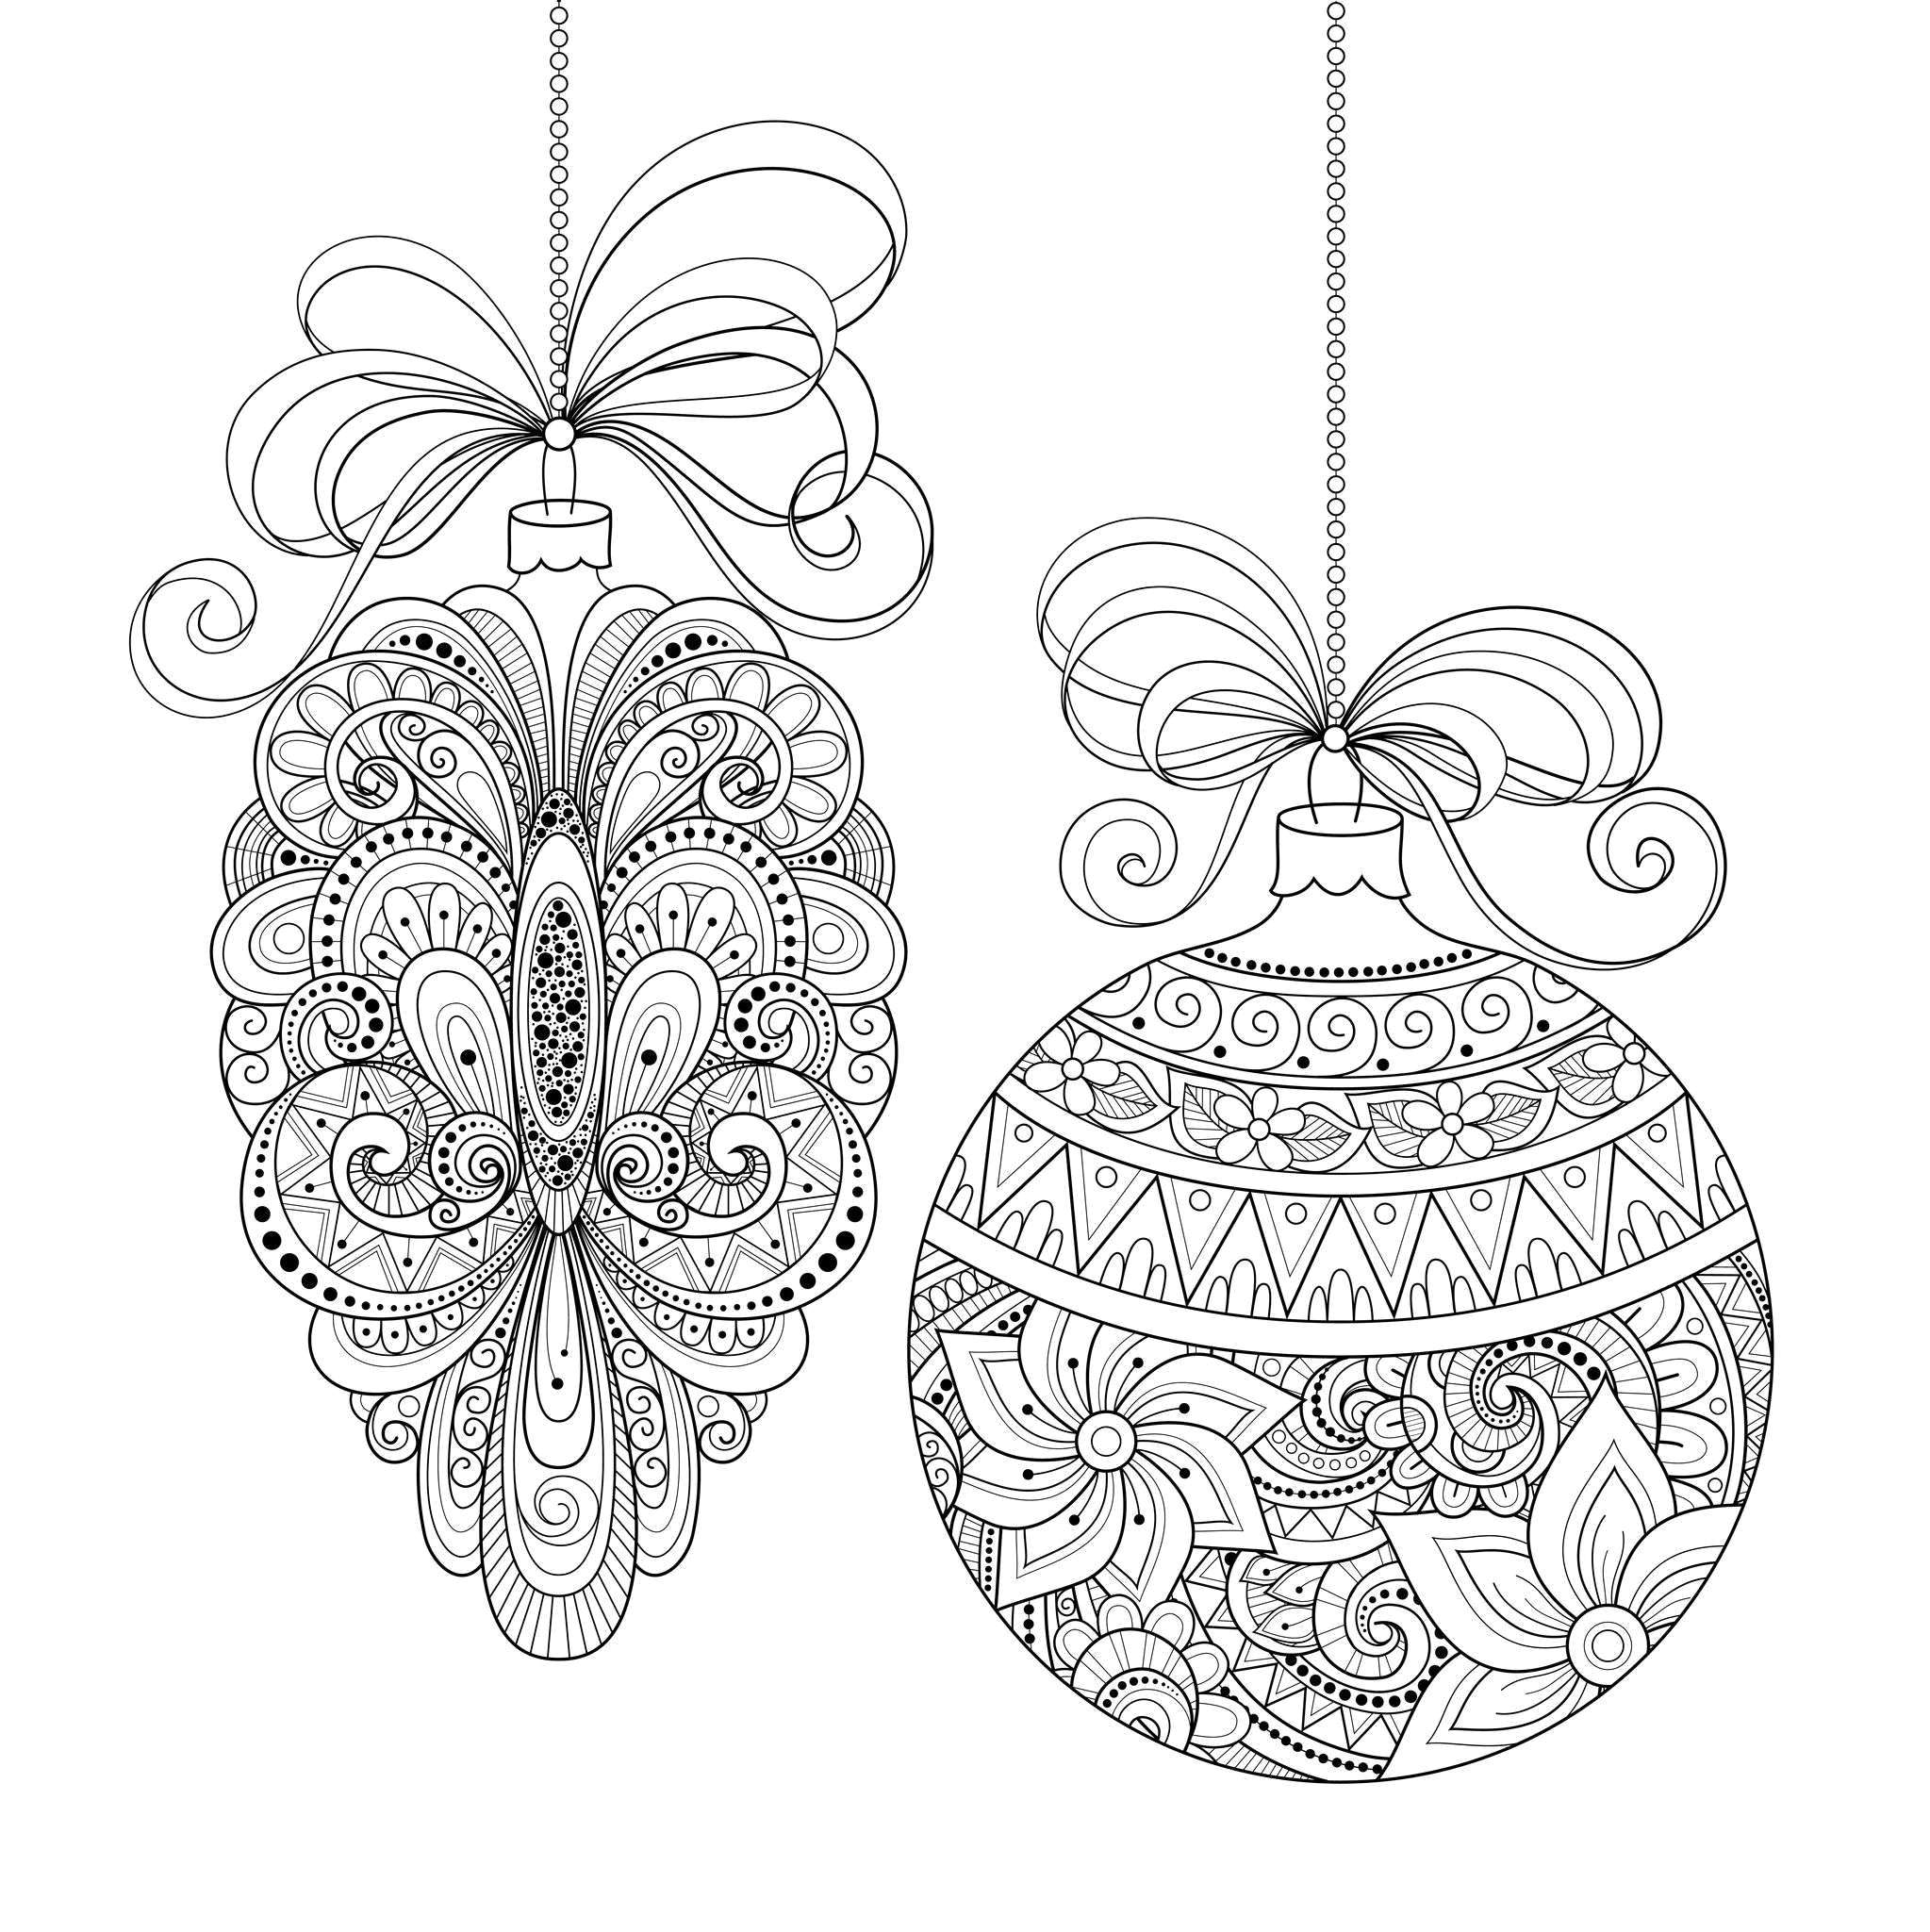 Christmas Card Coloring Pages Pdf With Make Your Own Minimalist Best For June